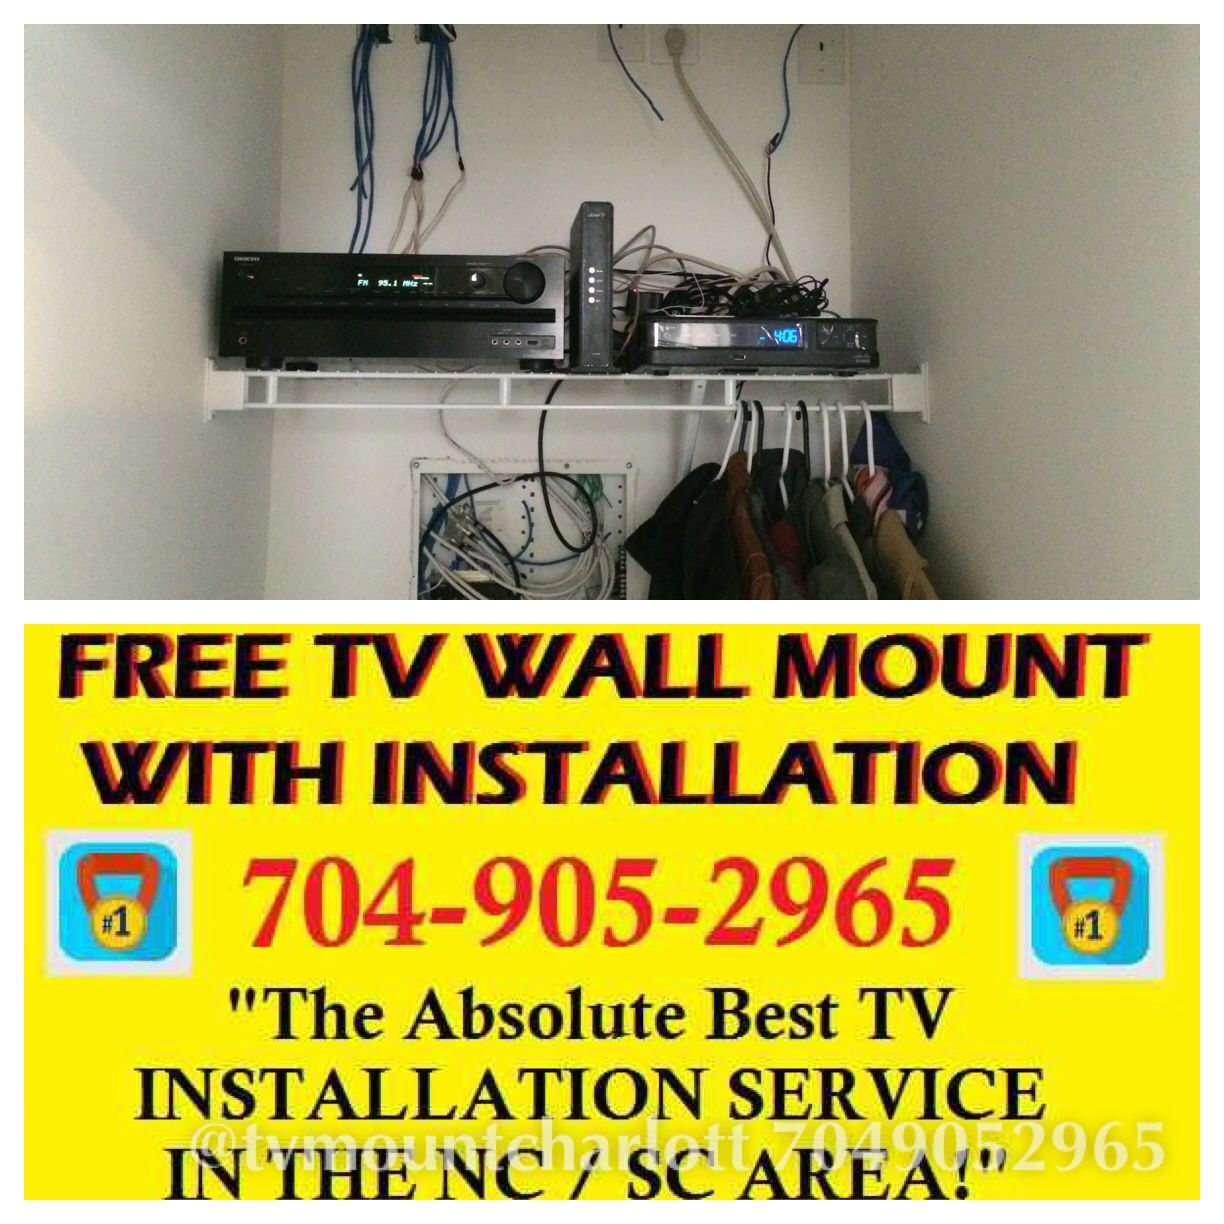 We Are The Infamous Infinite Designs Home Theater Pros Charlotte Tv Internet Wiring Design Mounting And Office Network Installers Include A Free Tilting